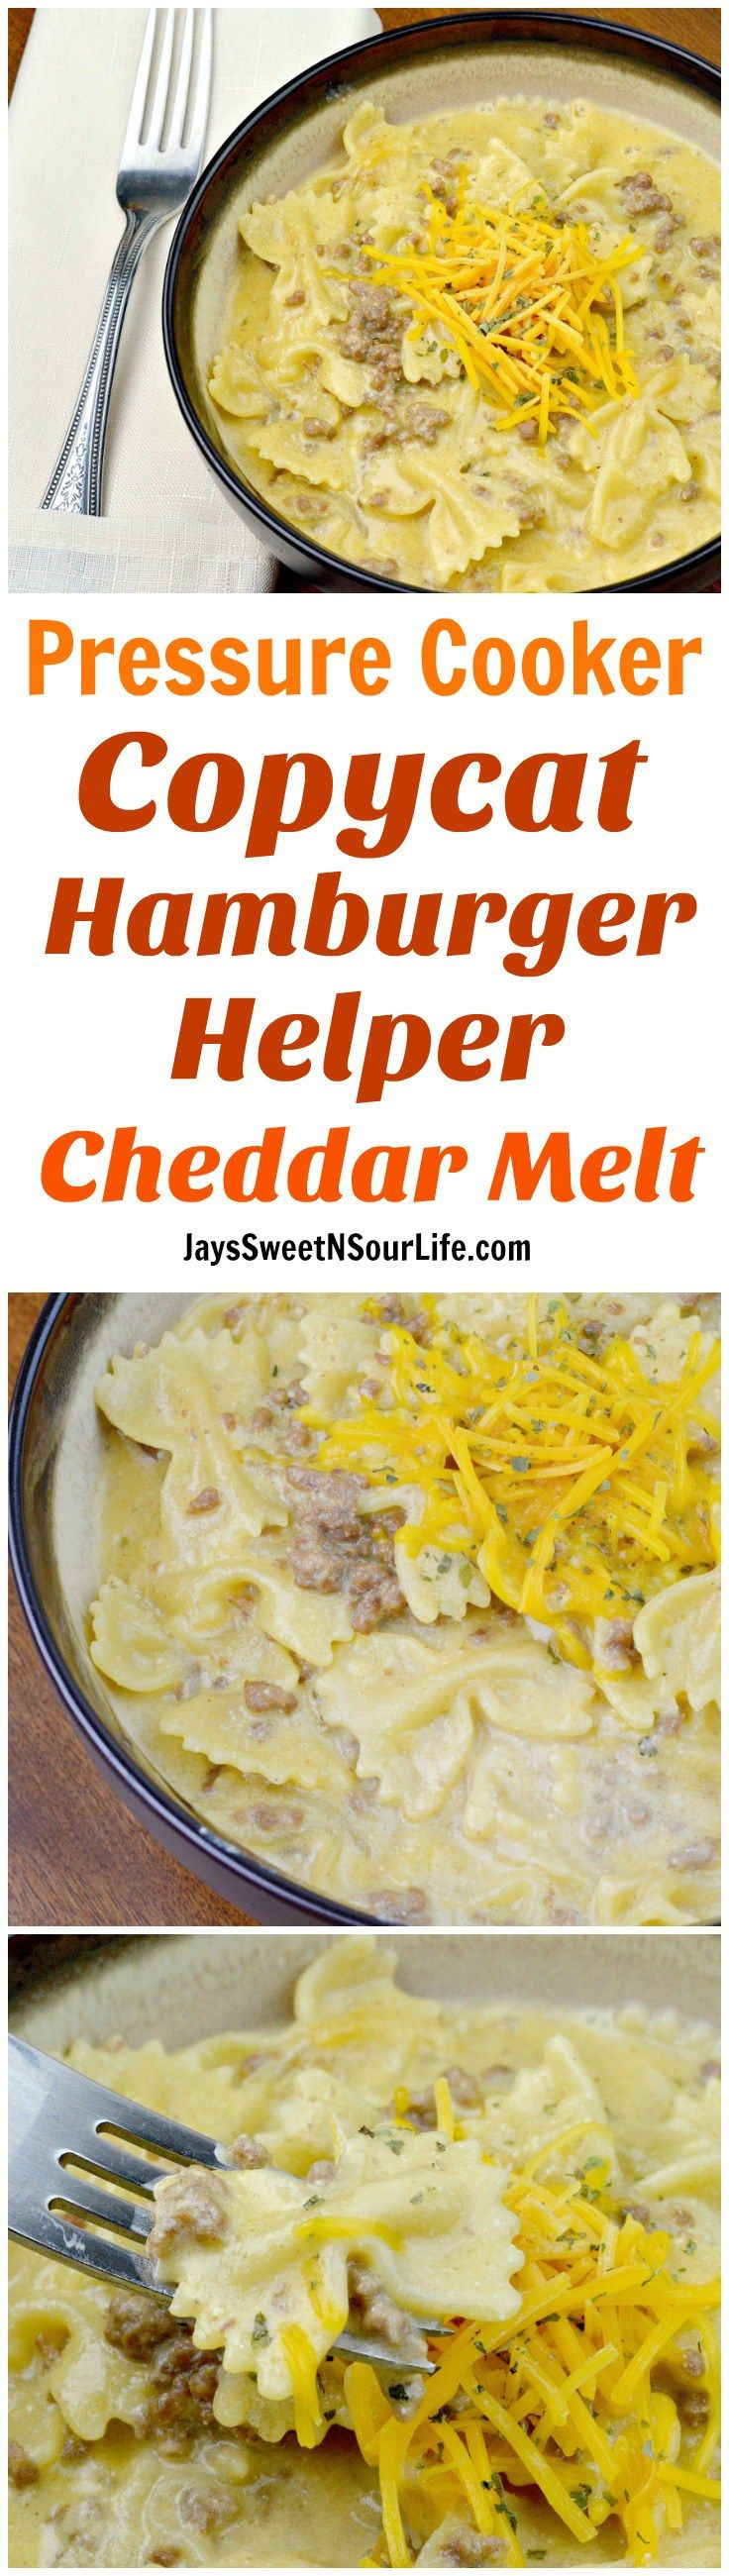 This creamy and delicious Pressure Cooker Copycat Hamburger Helper Cheddar Melt will knock your families socks off and keep them coming for more.